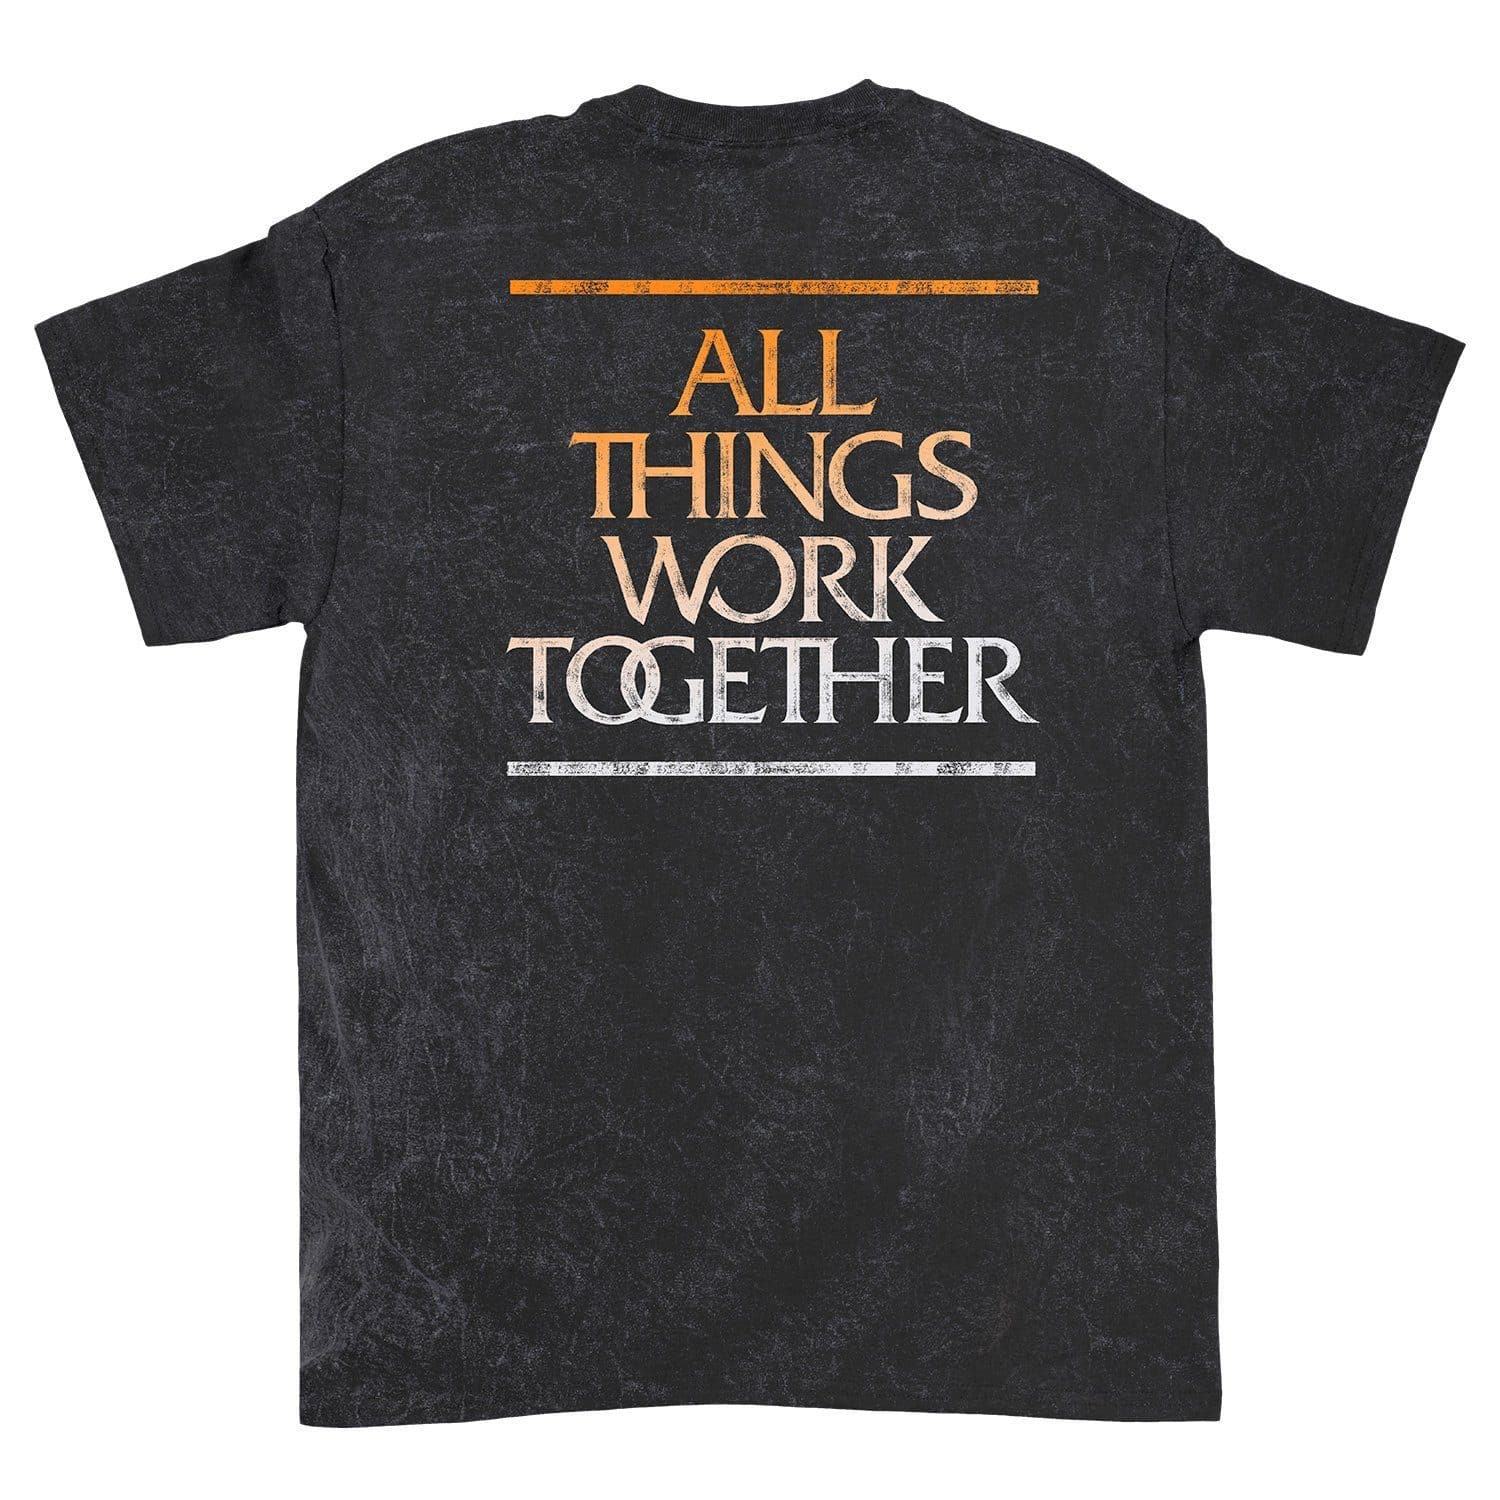 'All Things Work Together' Acid Wash T-Shirt